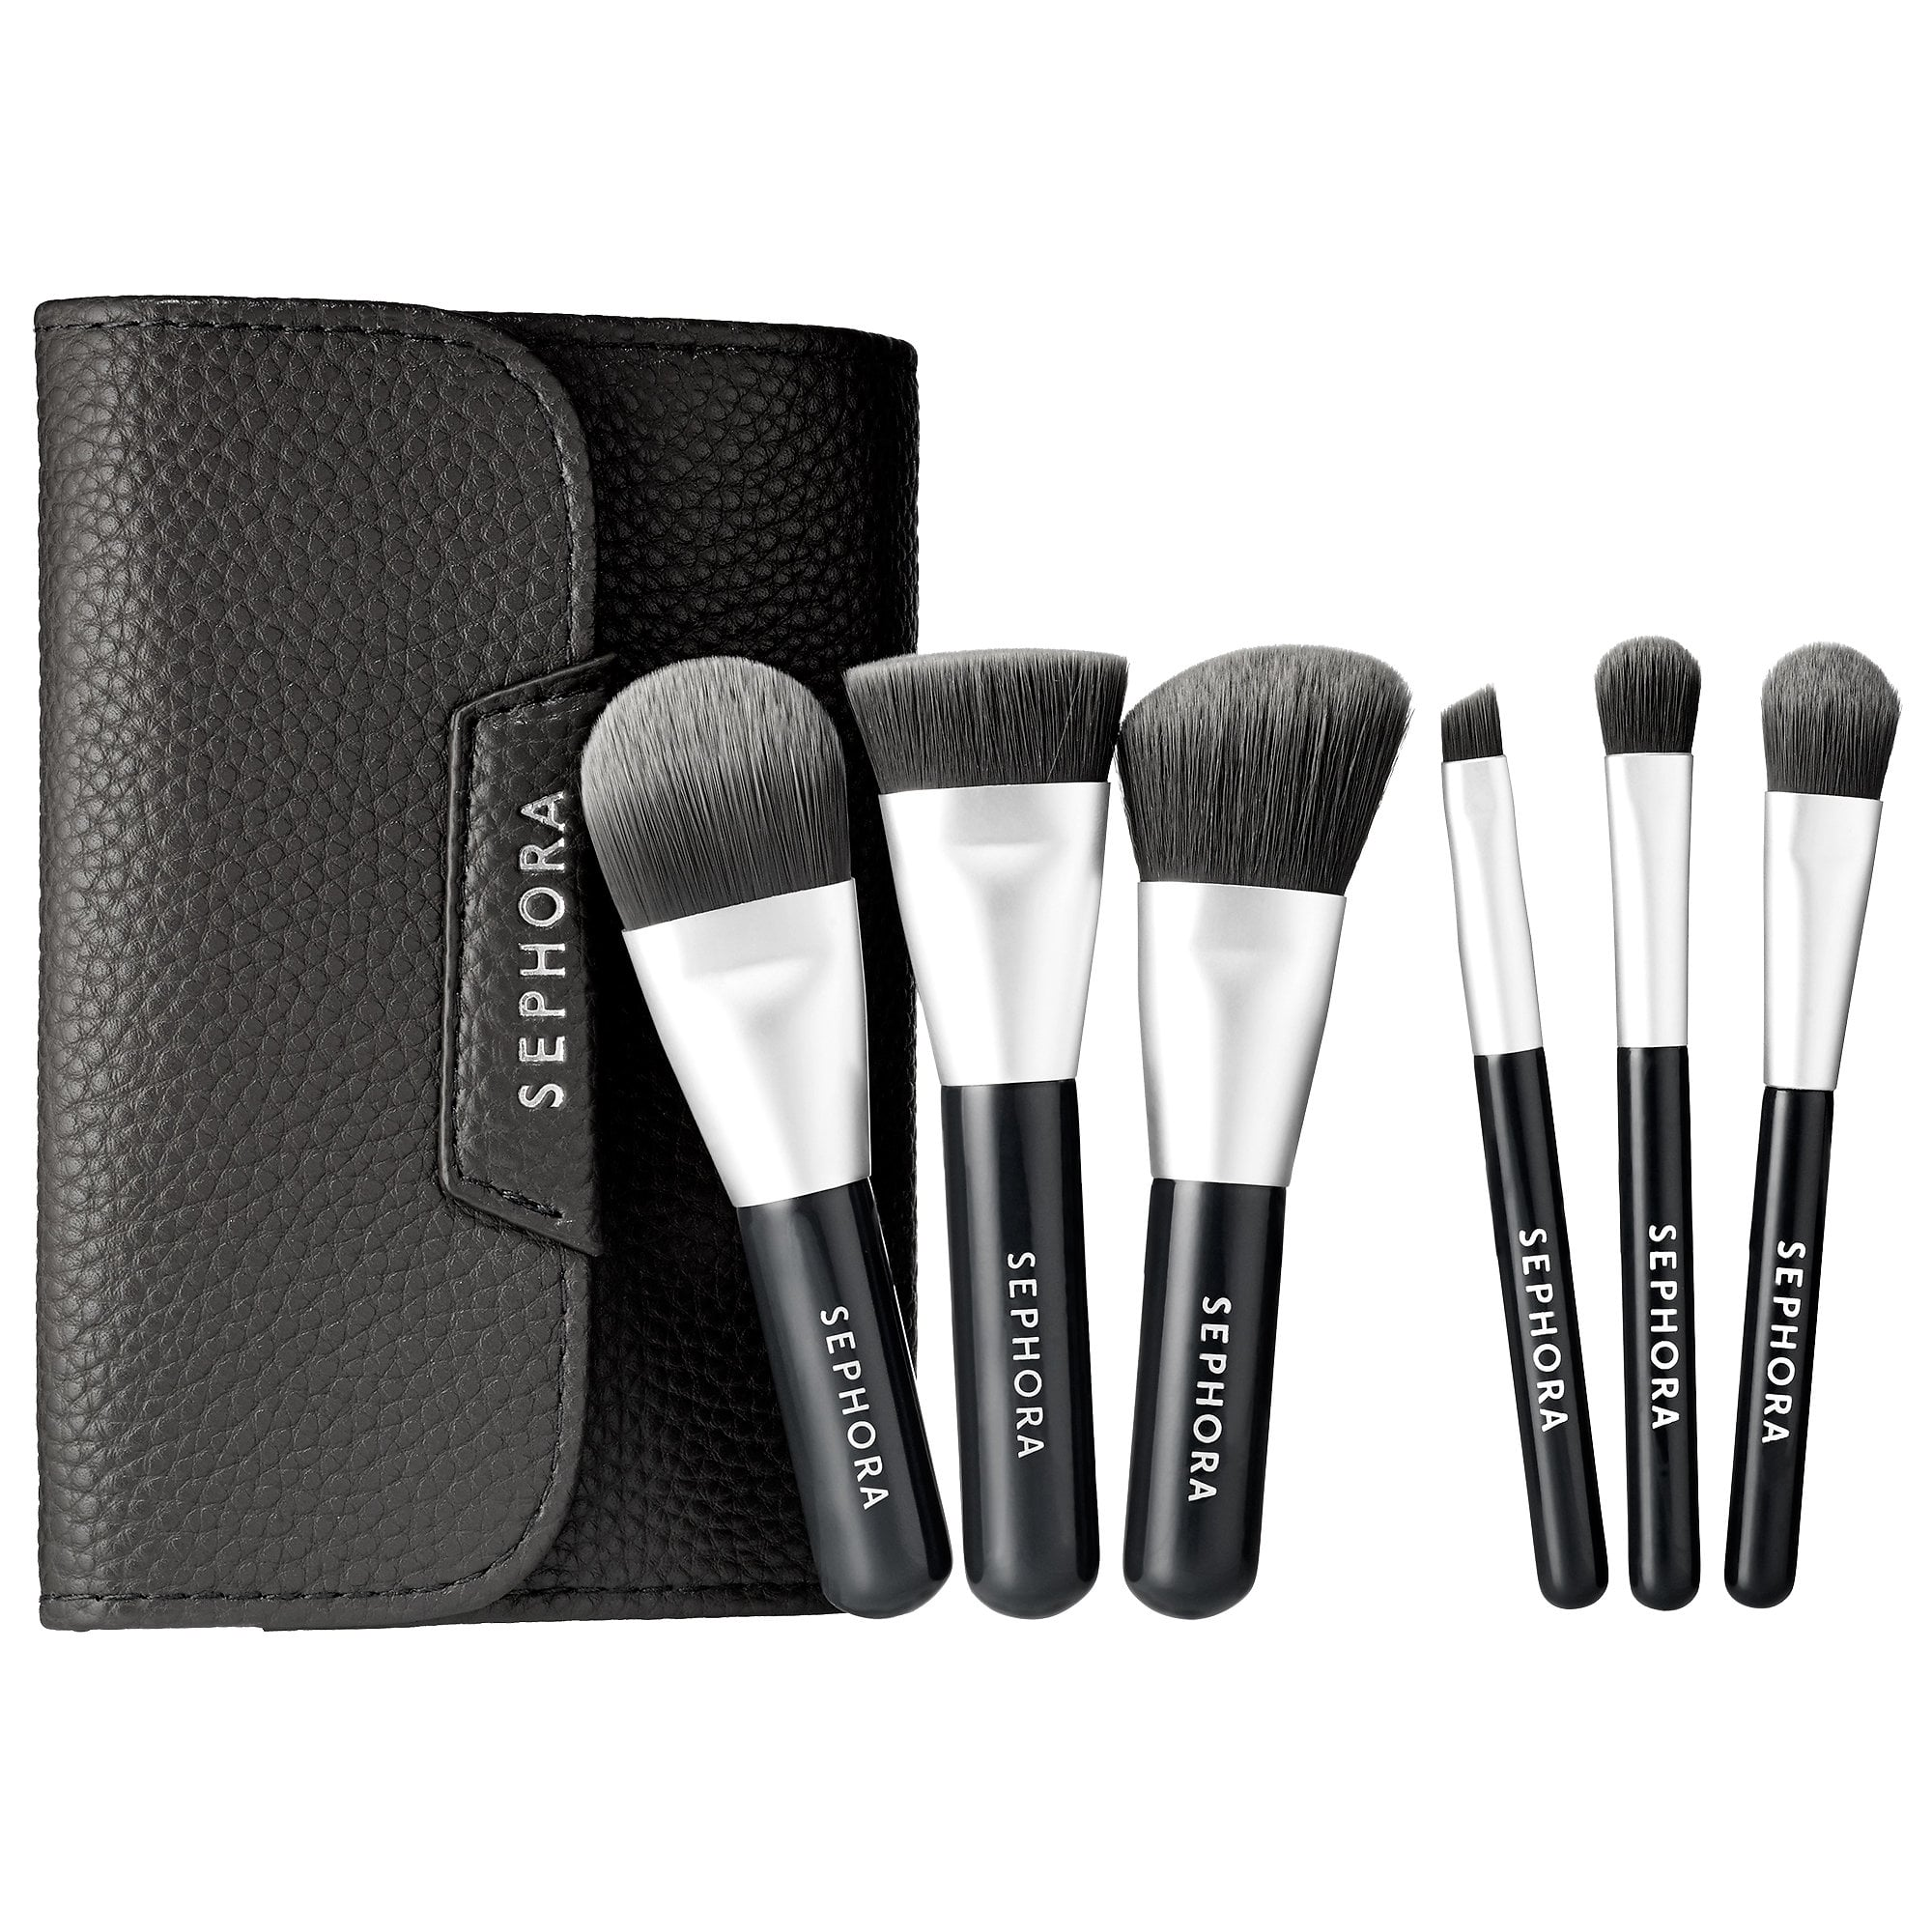 Mini Deluxe Charcoal Antibacterial Brush Set How to wash